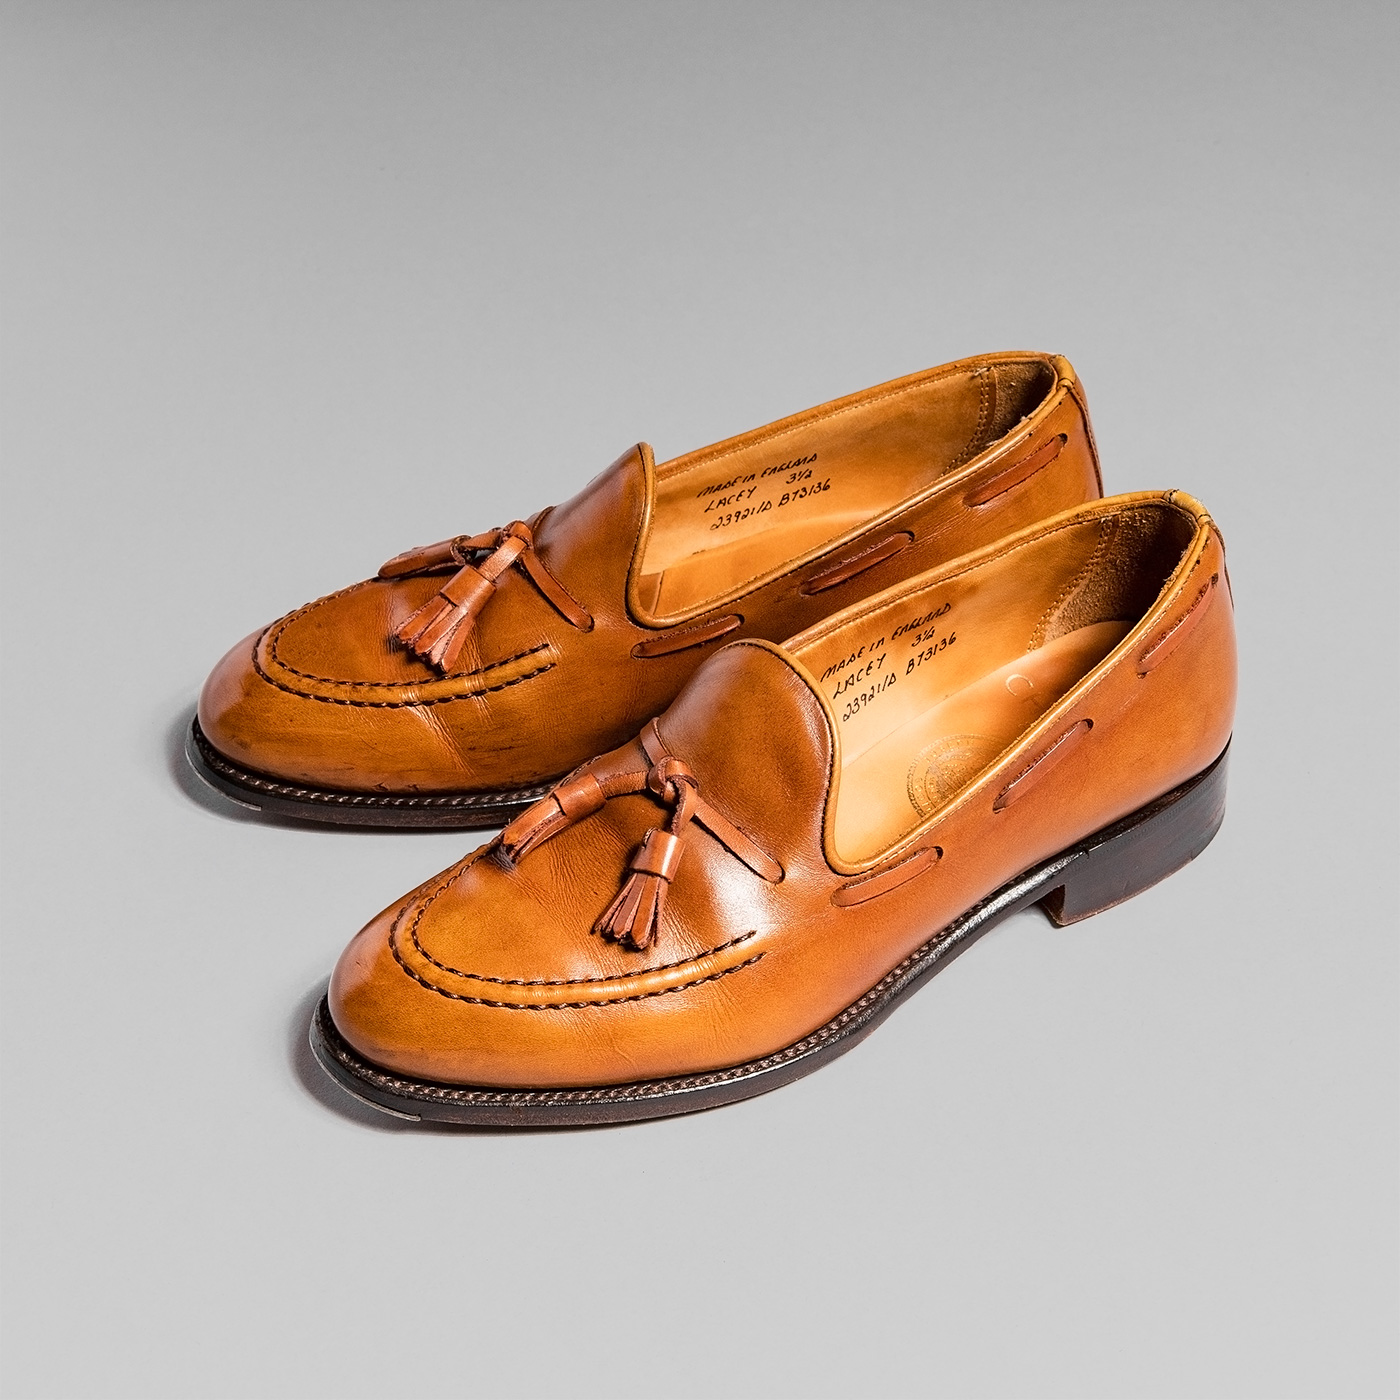 AGING MUSEUM of JOSEPH CHEANEY CONKER LACEY(レイシー) 4年着用